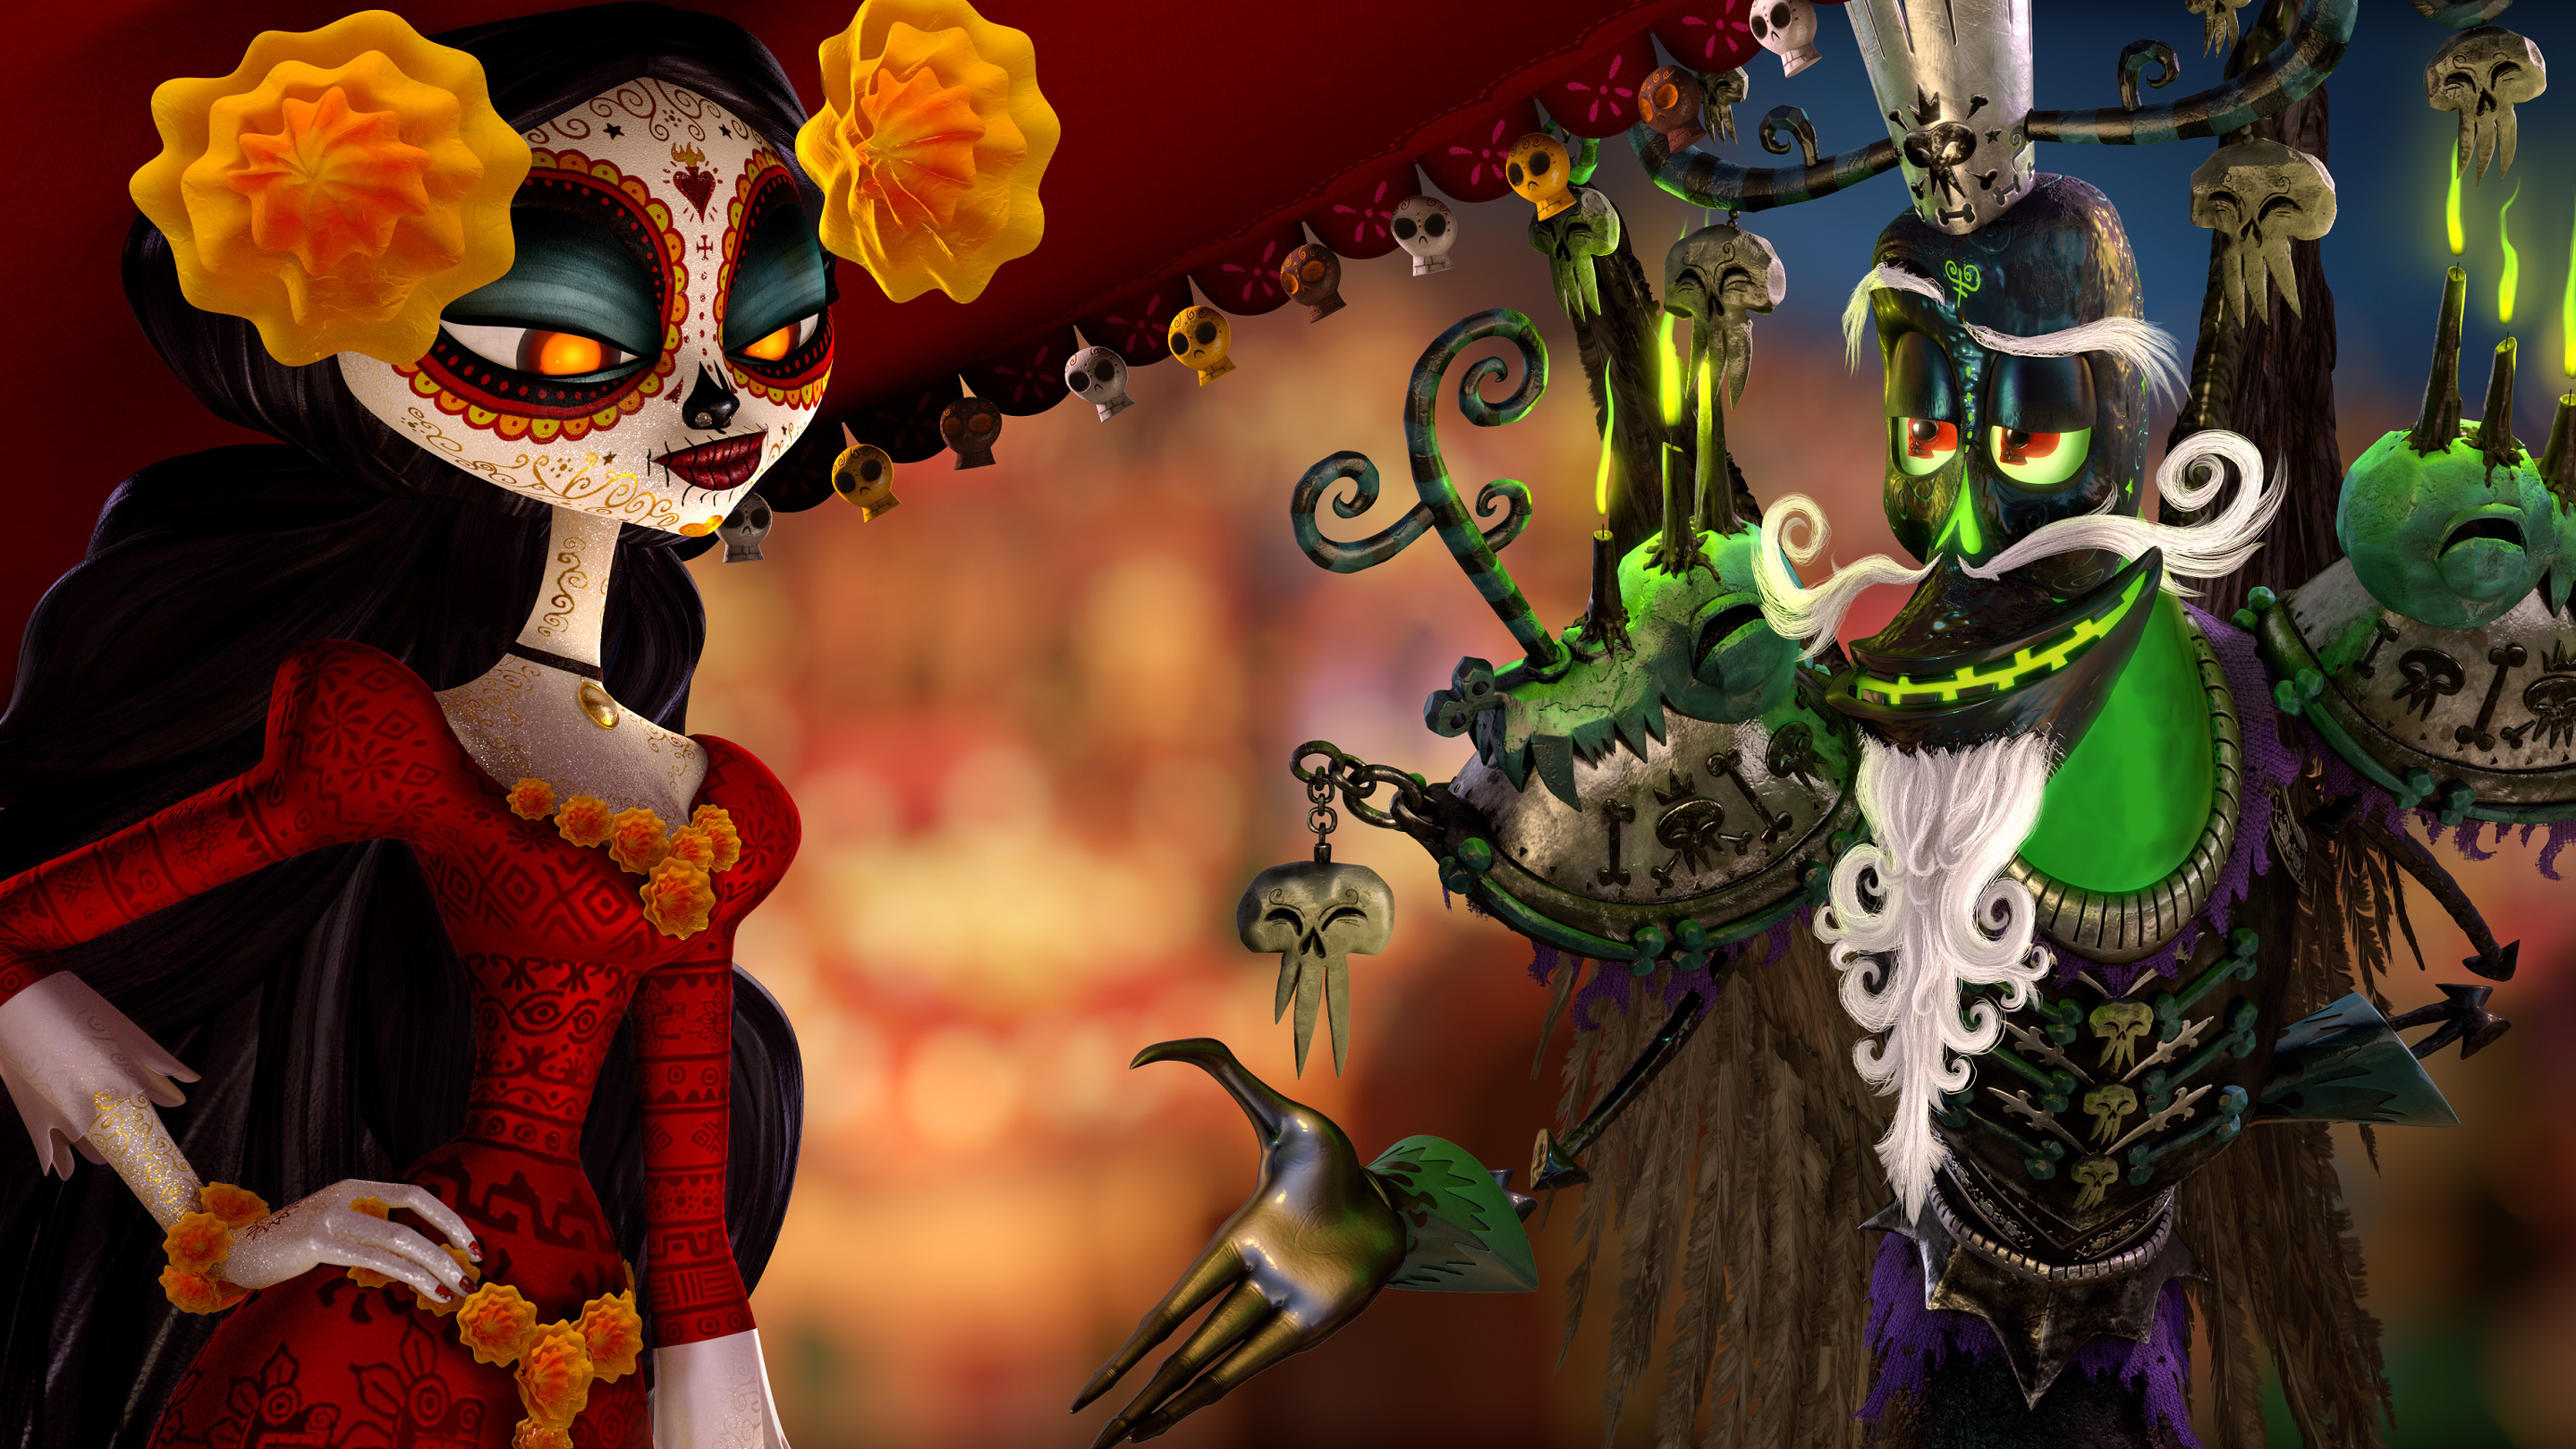 Dia De Muertos Imagenes Animadas: The Book Of Life Full HD Wallpaper And Background Image